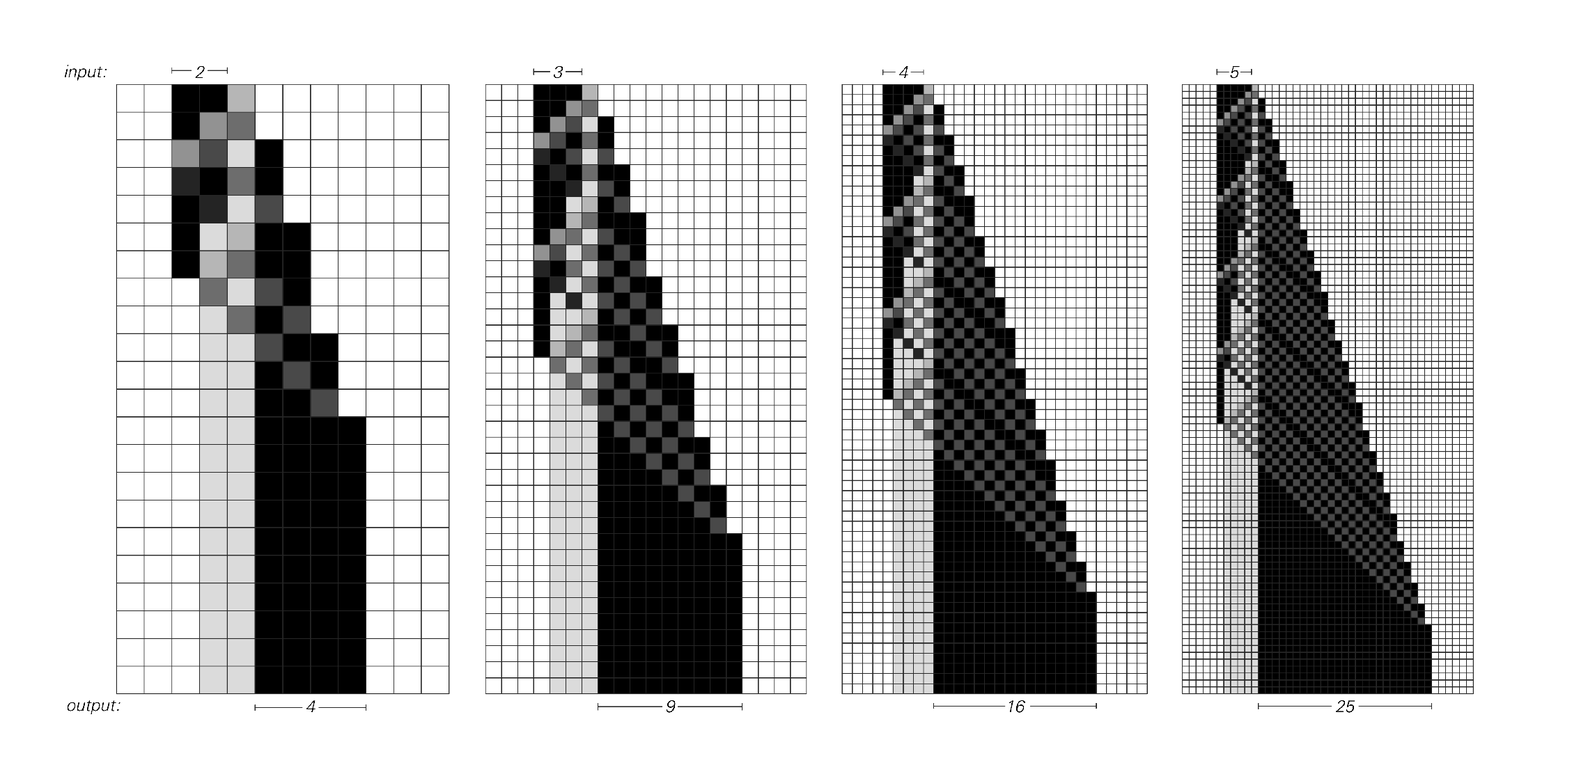 Cellular automaton that computes the square of any number